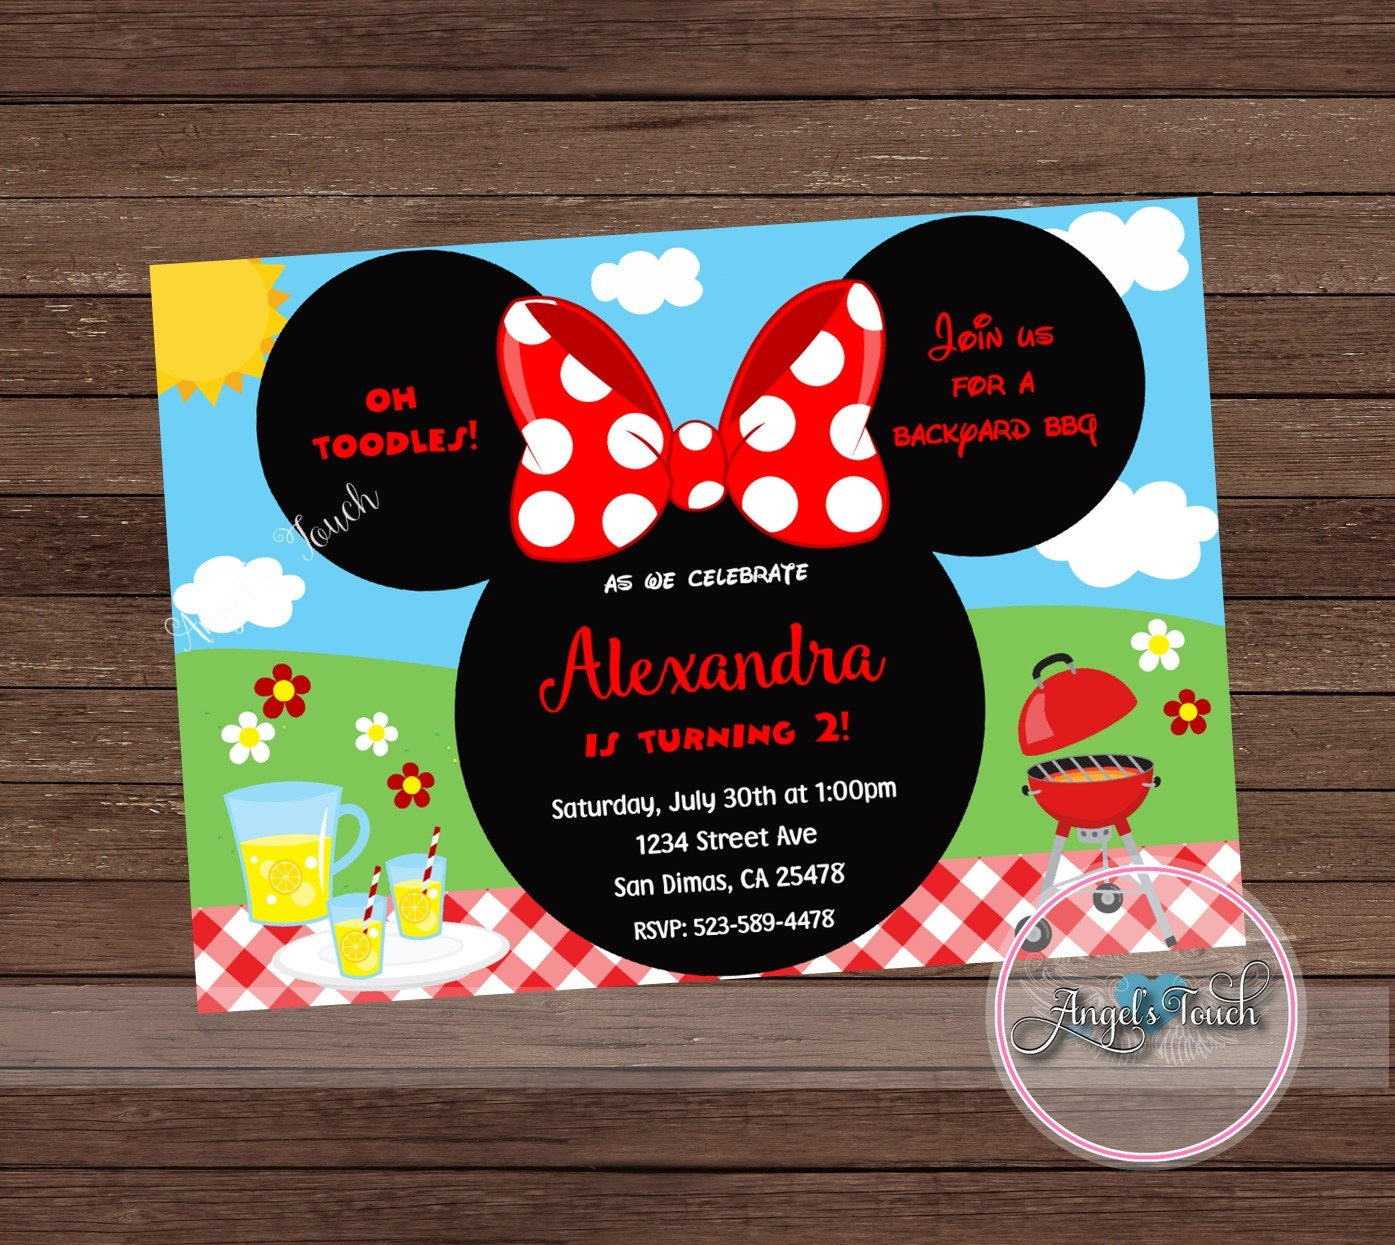 minnie mouse party invitation minnie mouse backyard bbq party